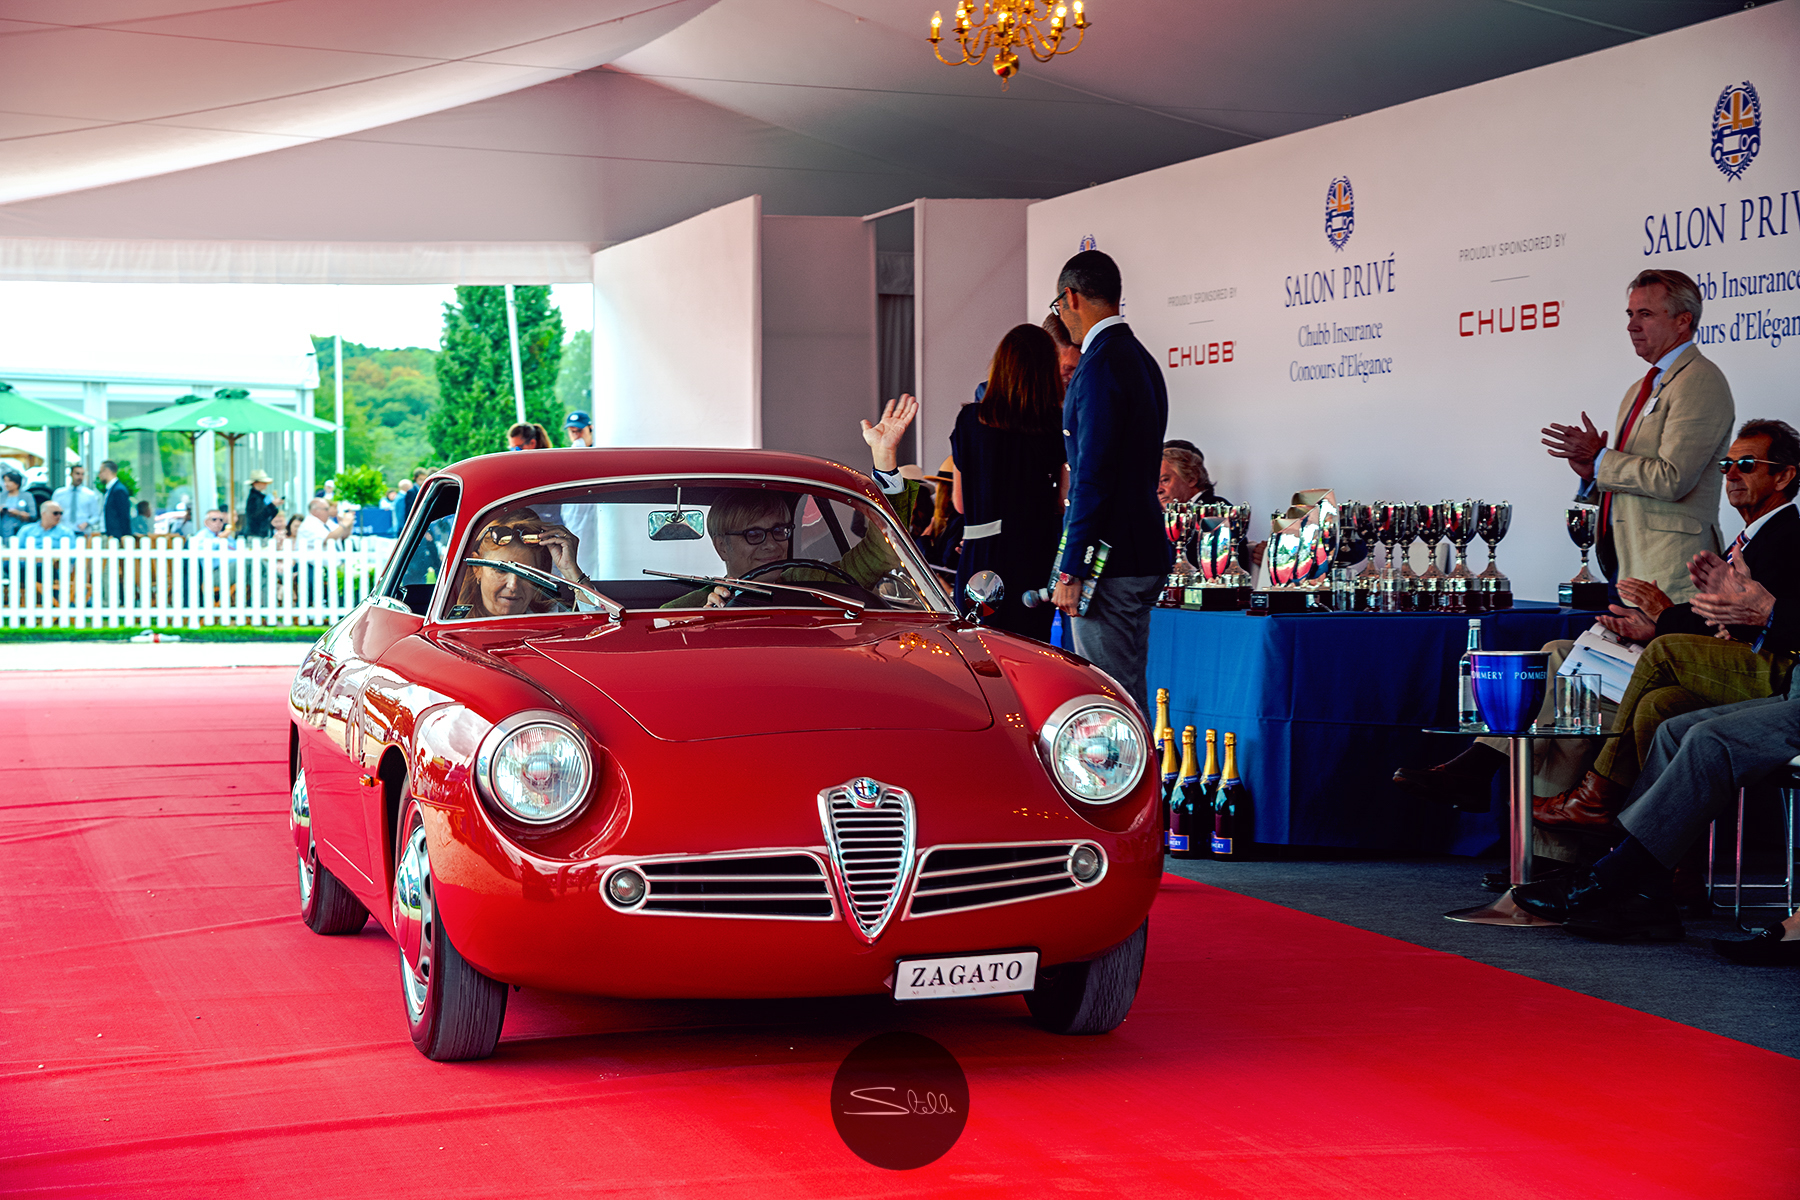 Stella Scordellis Salon Prive 2018 72 Watermarked.jpg